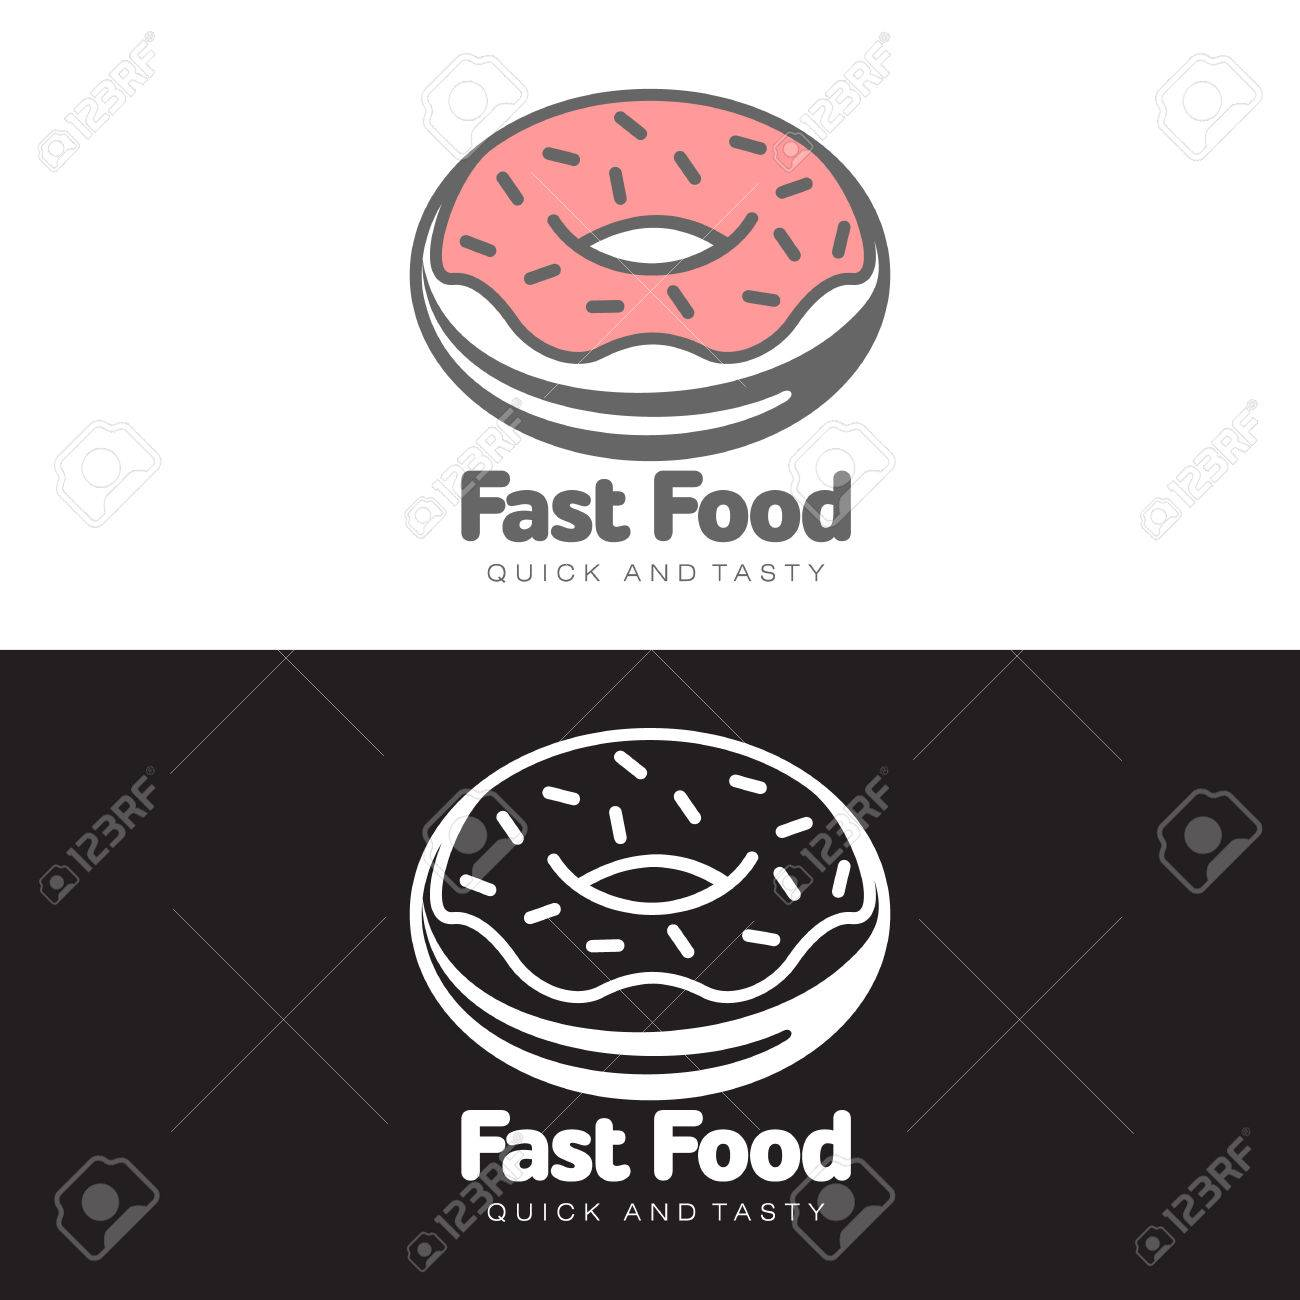 logo sweet donut with icing, vector simple illustration isolated